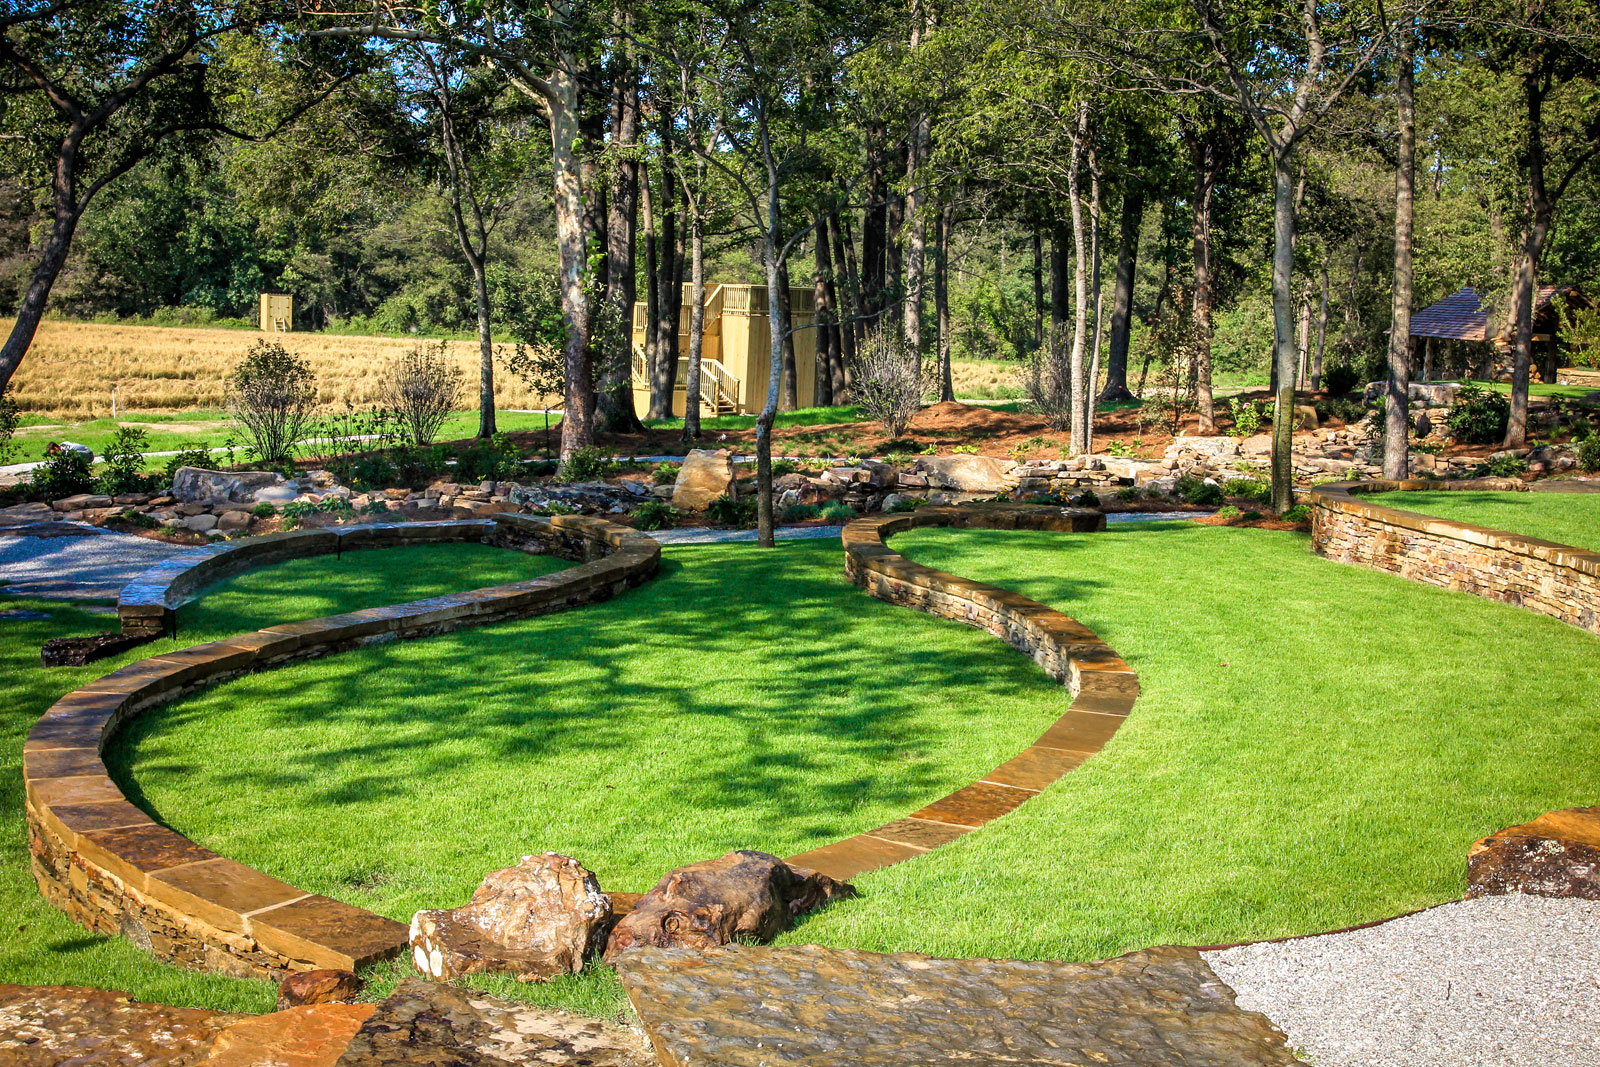 Natural Landscape & Amphitheater